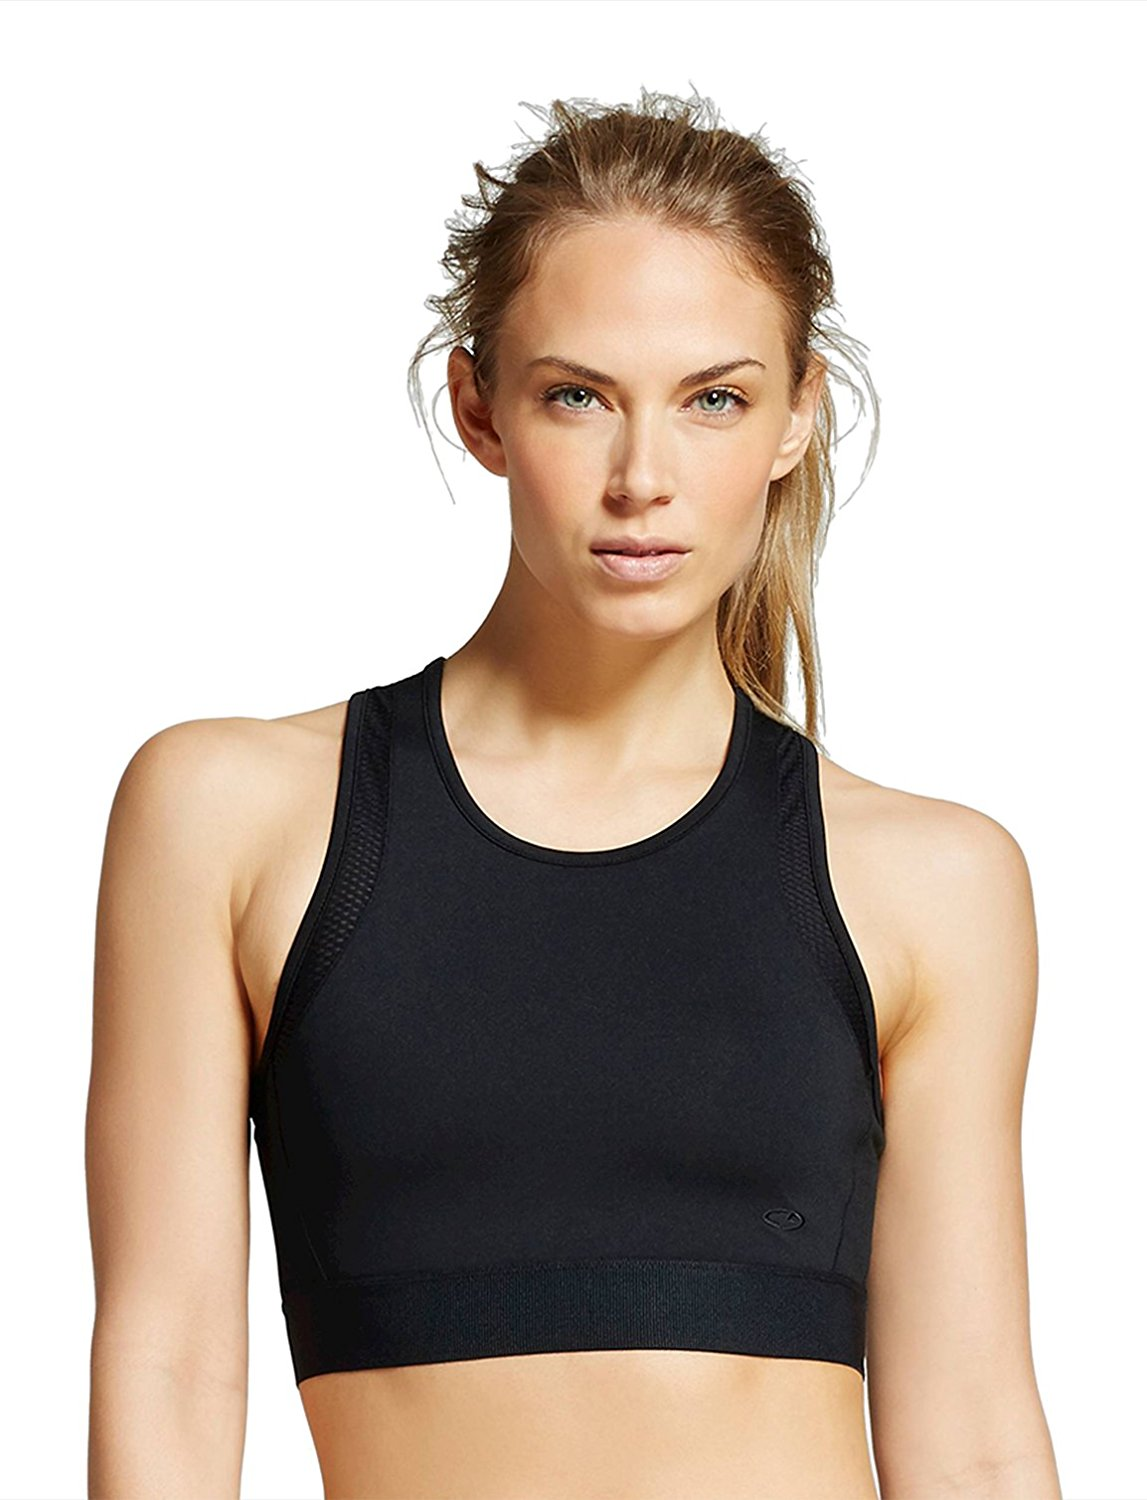 52a039d655e1f Get Quotations · C9 Champion Women s Strappy Back Sports Bra